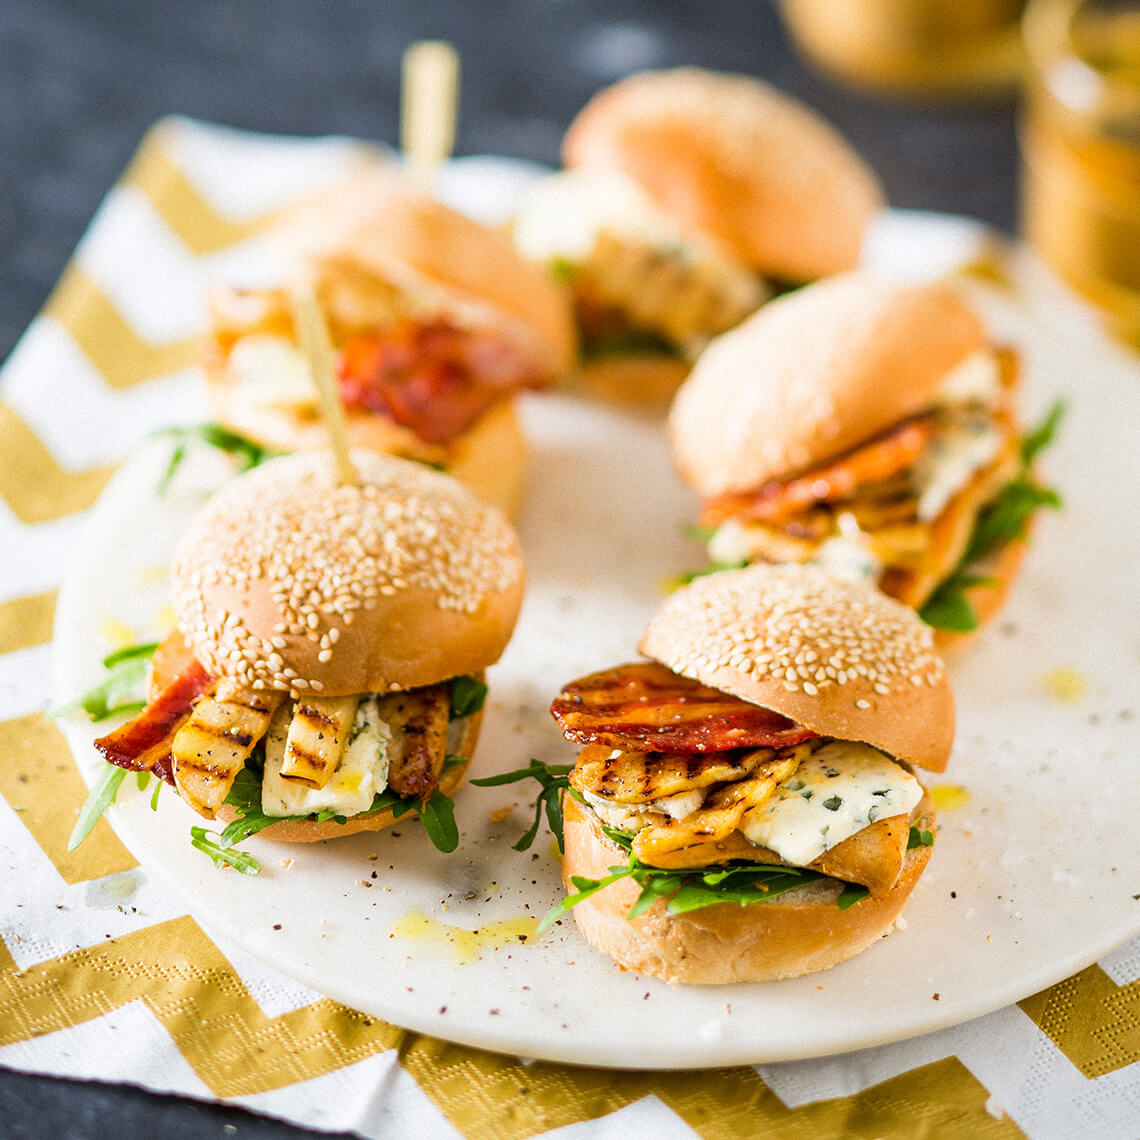 Grilled pear, blue cheese and bacon sliders